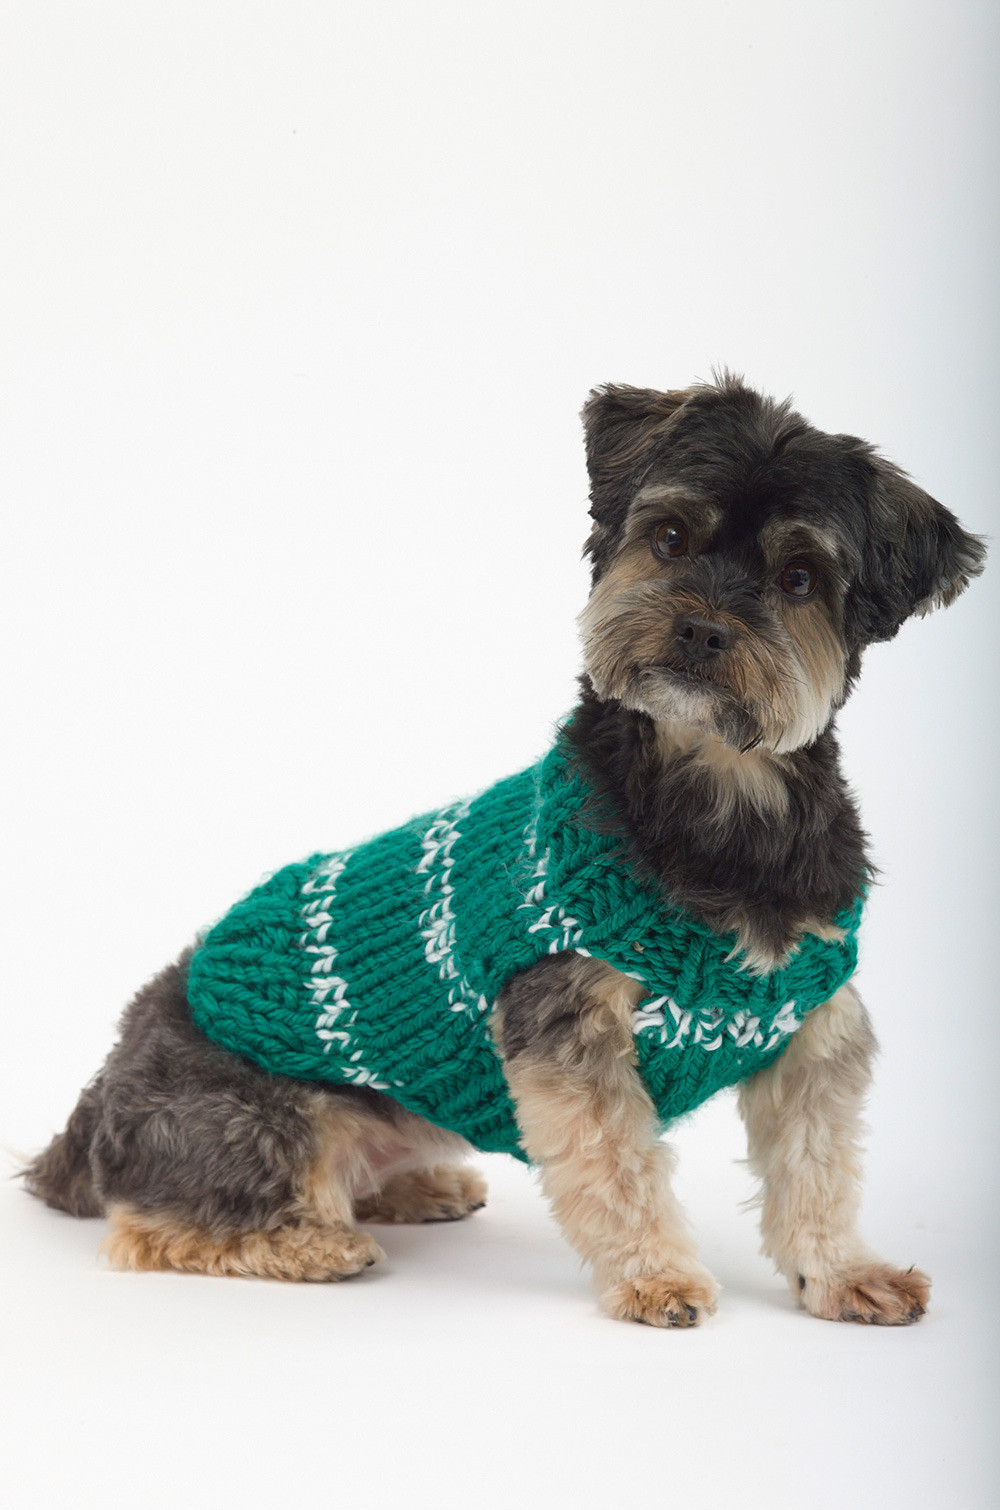 Inspirational top 5 Free Dog Sweater Knitting Patterns Knitting Patterns for Dog Sweaters for Beginners Of Luxury 41 Pictures Knitting Patterns for Dog Sweaters for Beginners